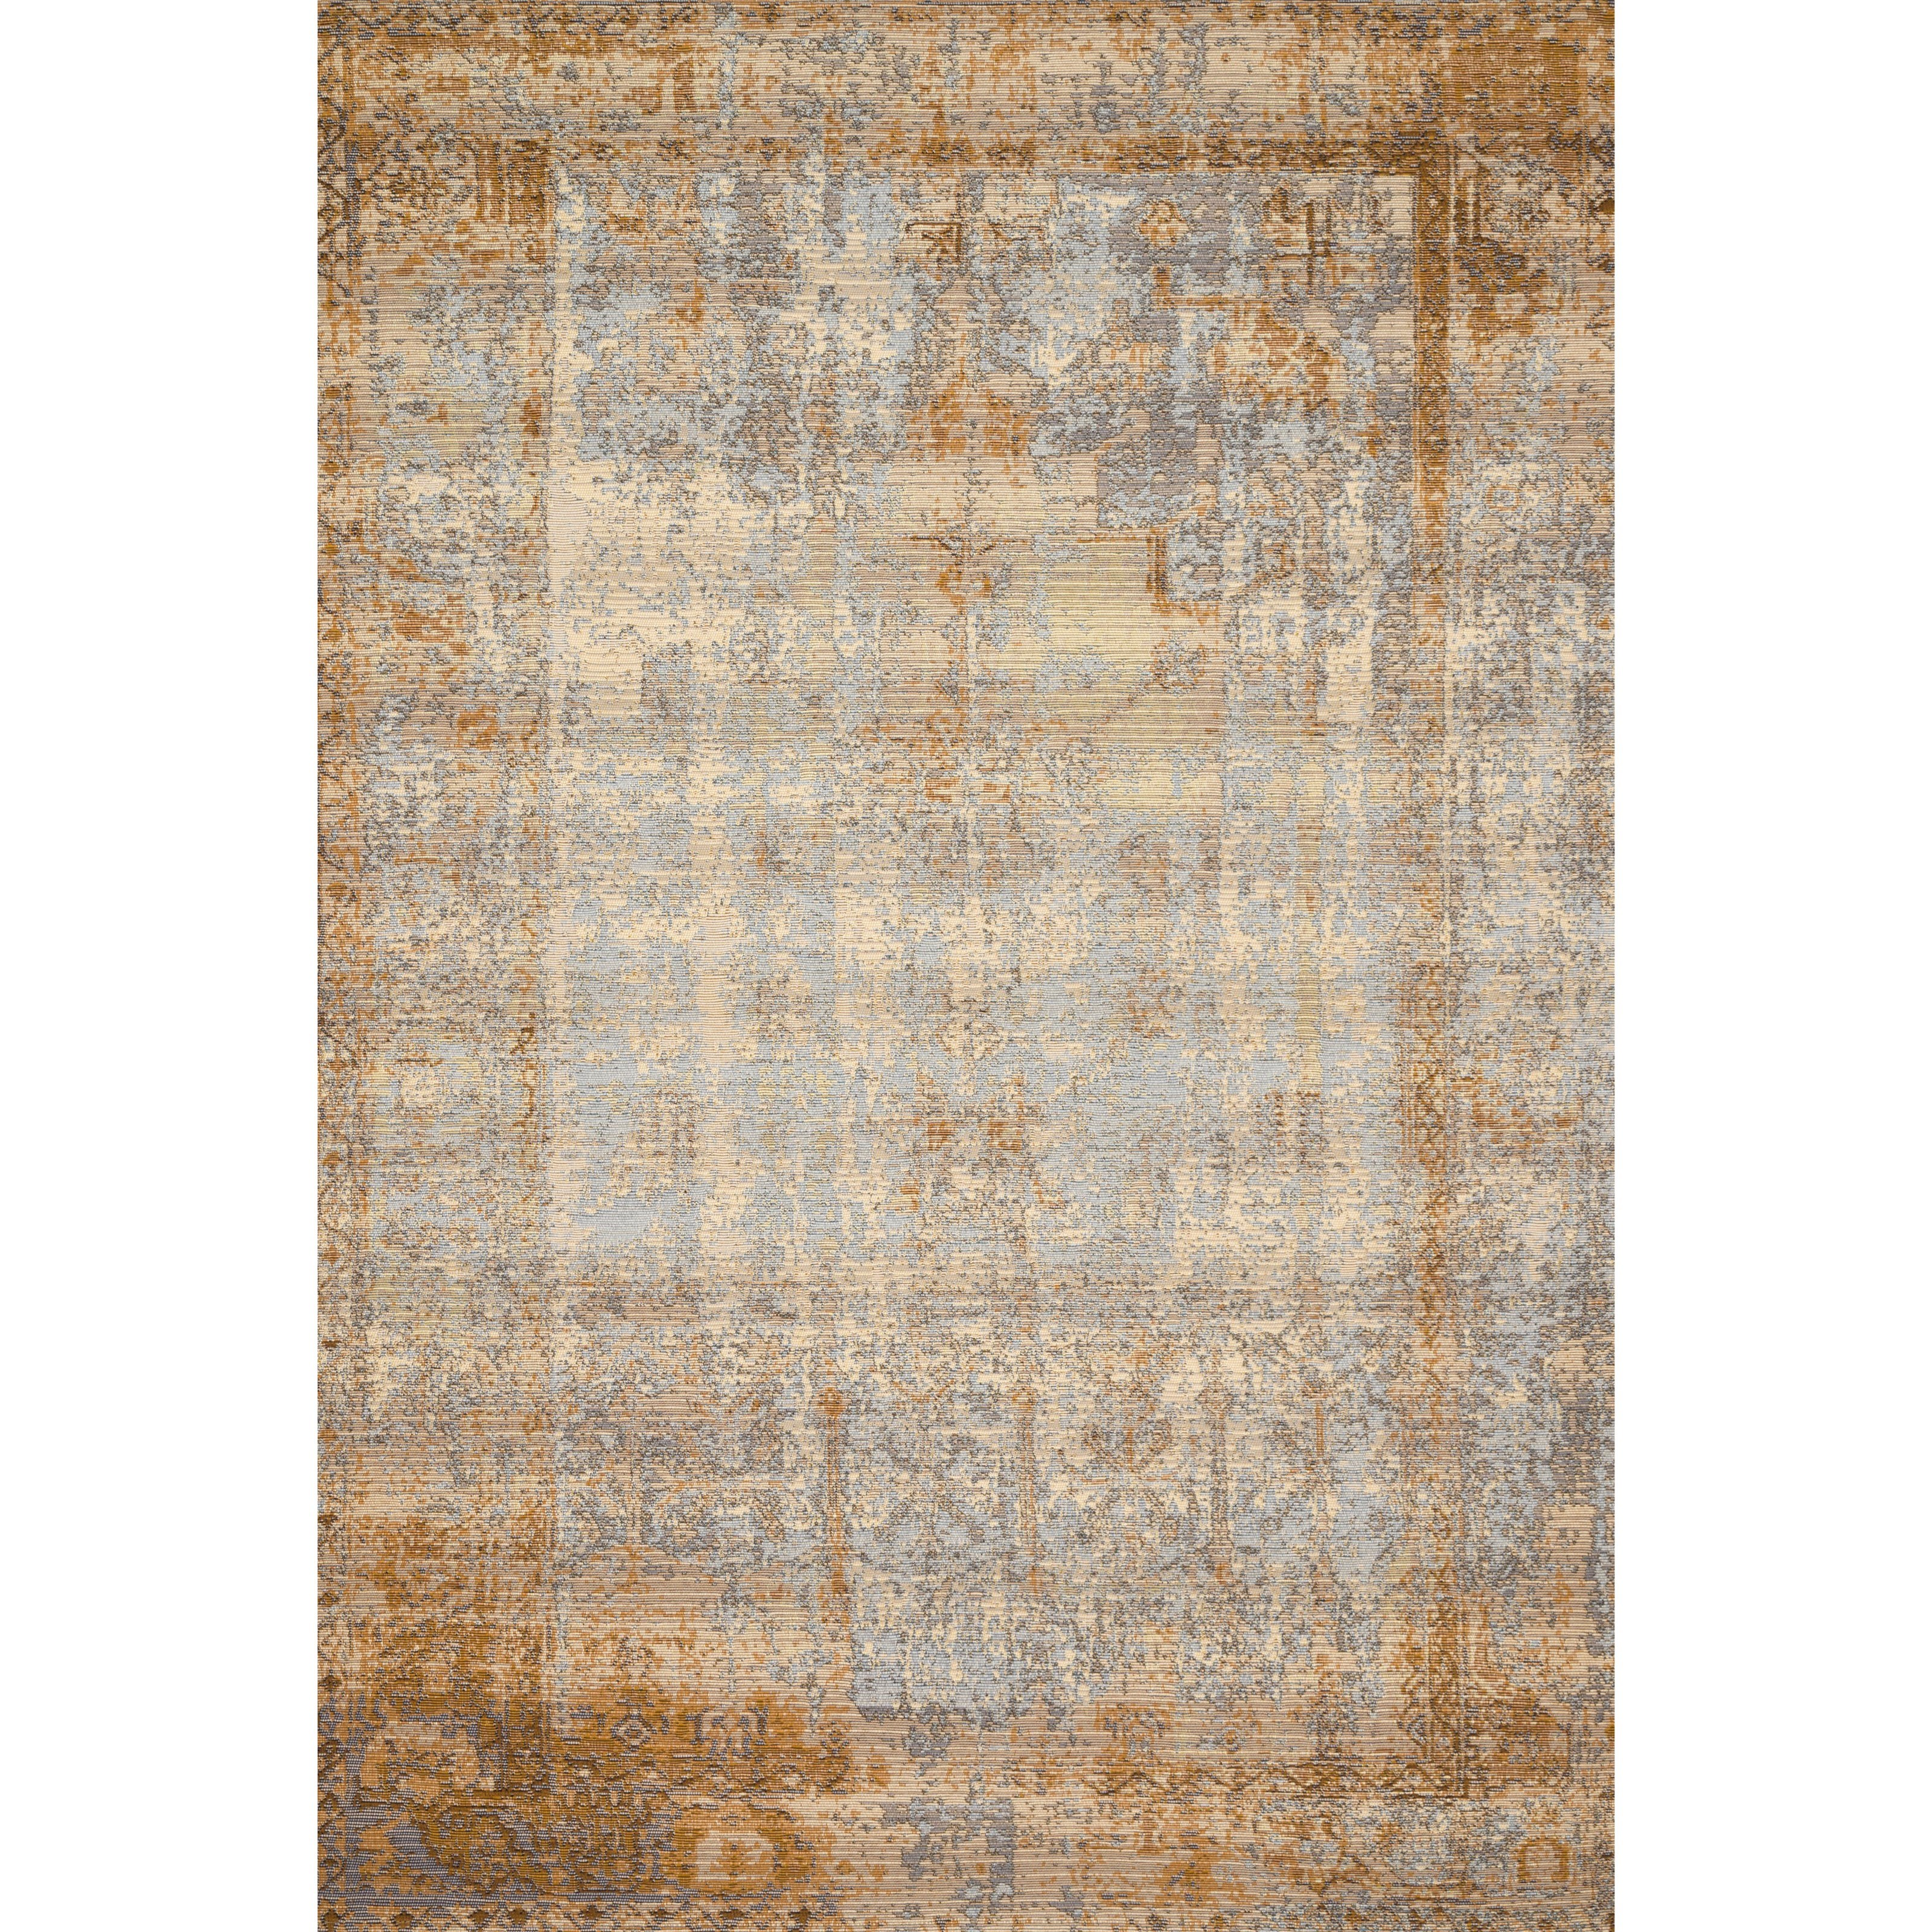 """Mika 1'6"""" x 1'6""""  Ant. Ivory / Copper Rug by Loloi Rugs at Sprintz Furniture"""